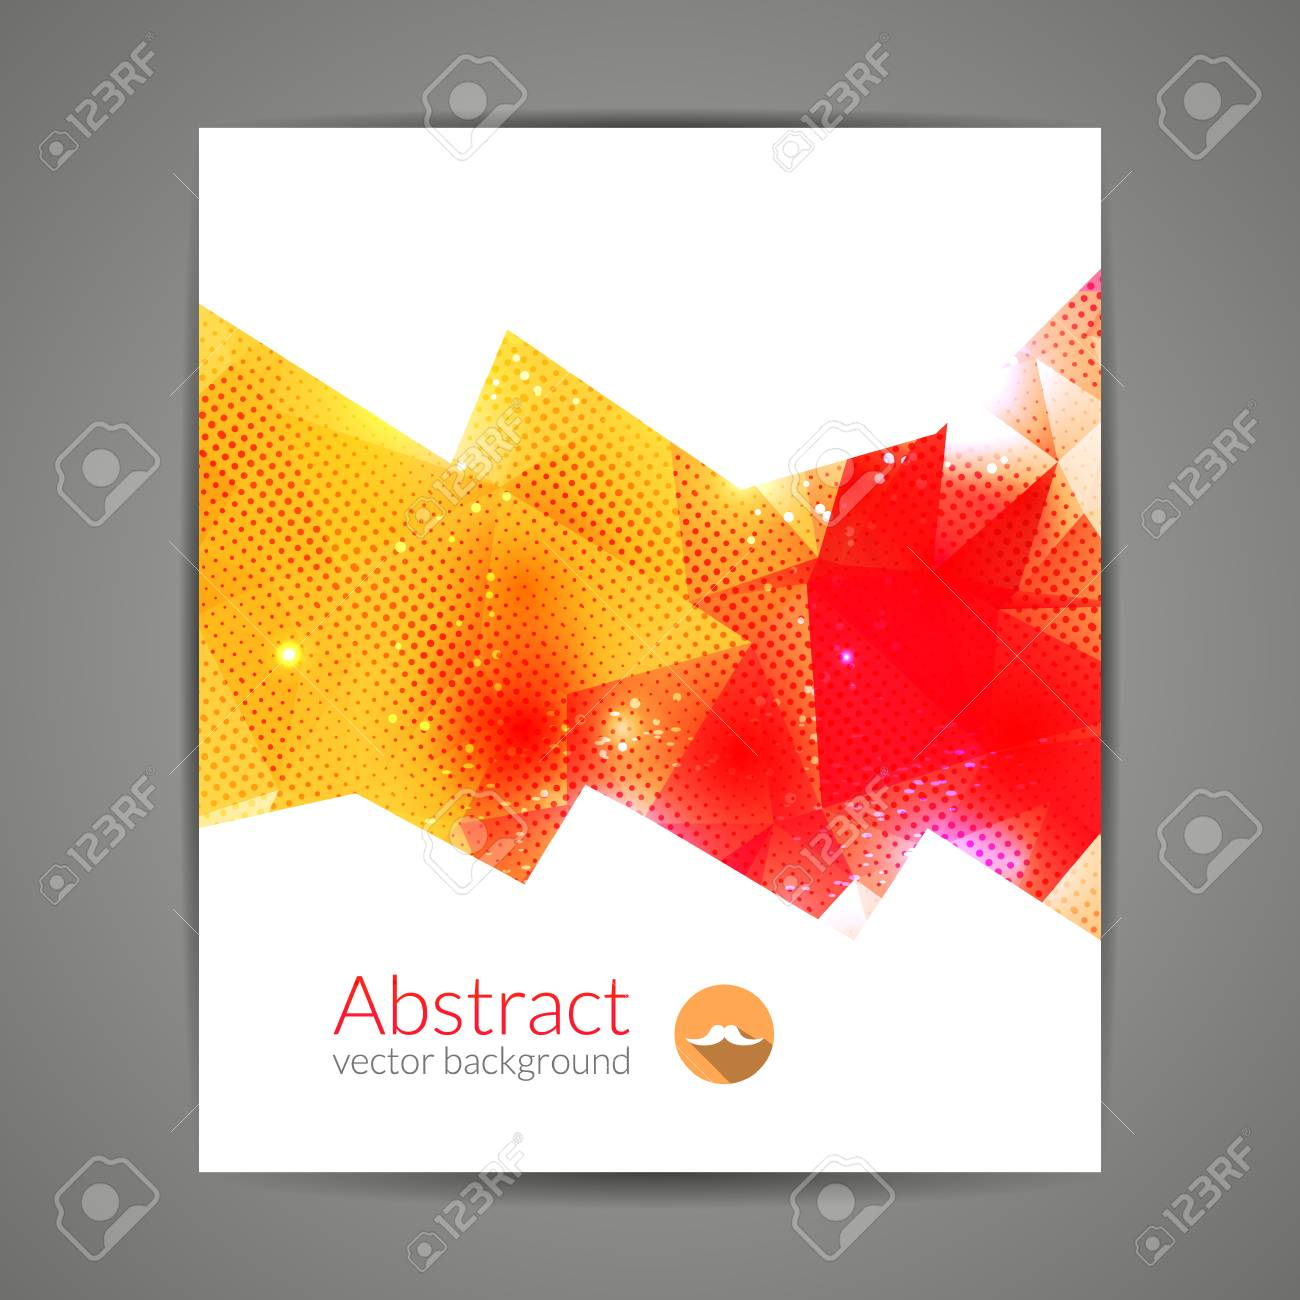 Abstract Triangle 3d Geometric Colorful Graphic Background Wallpaper